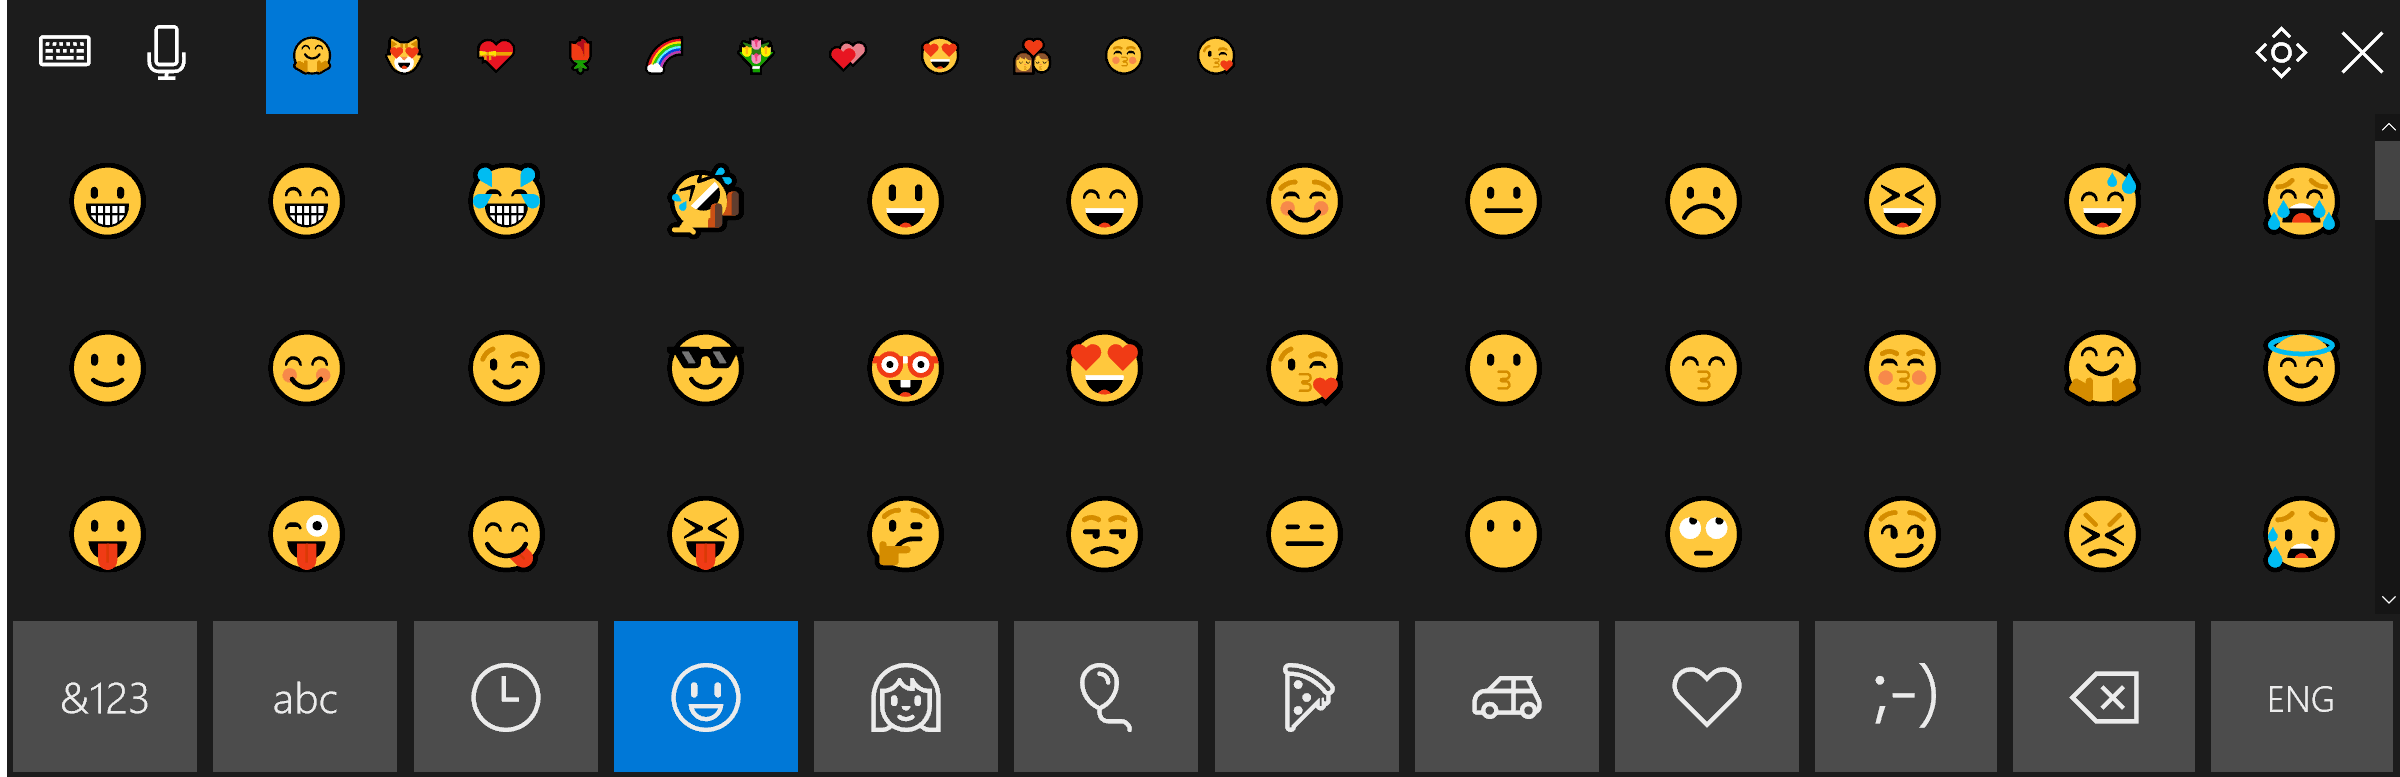 Improved Emojis